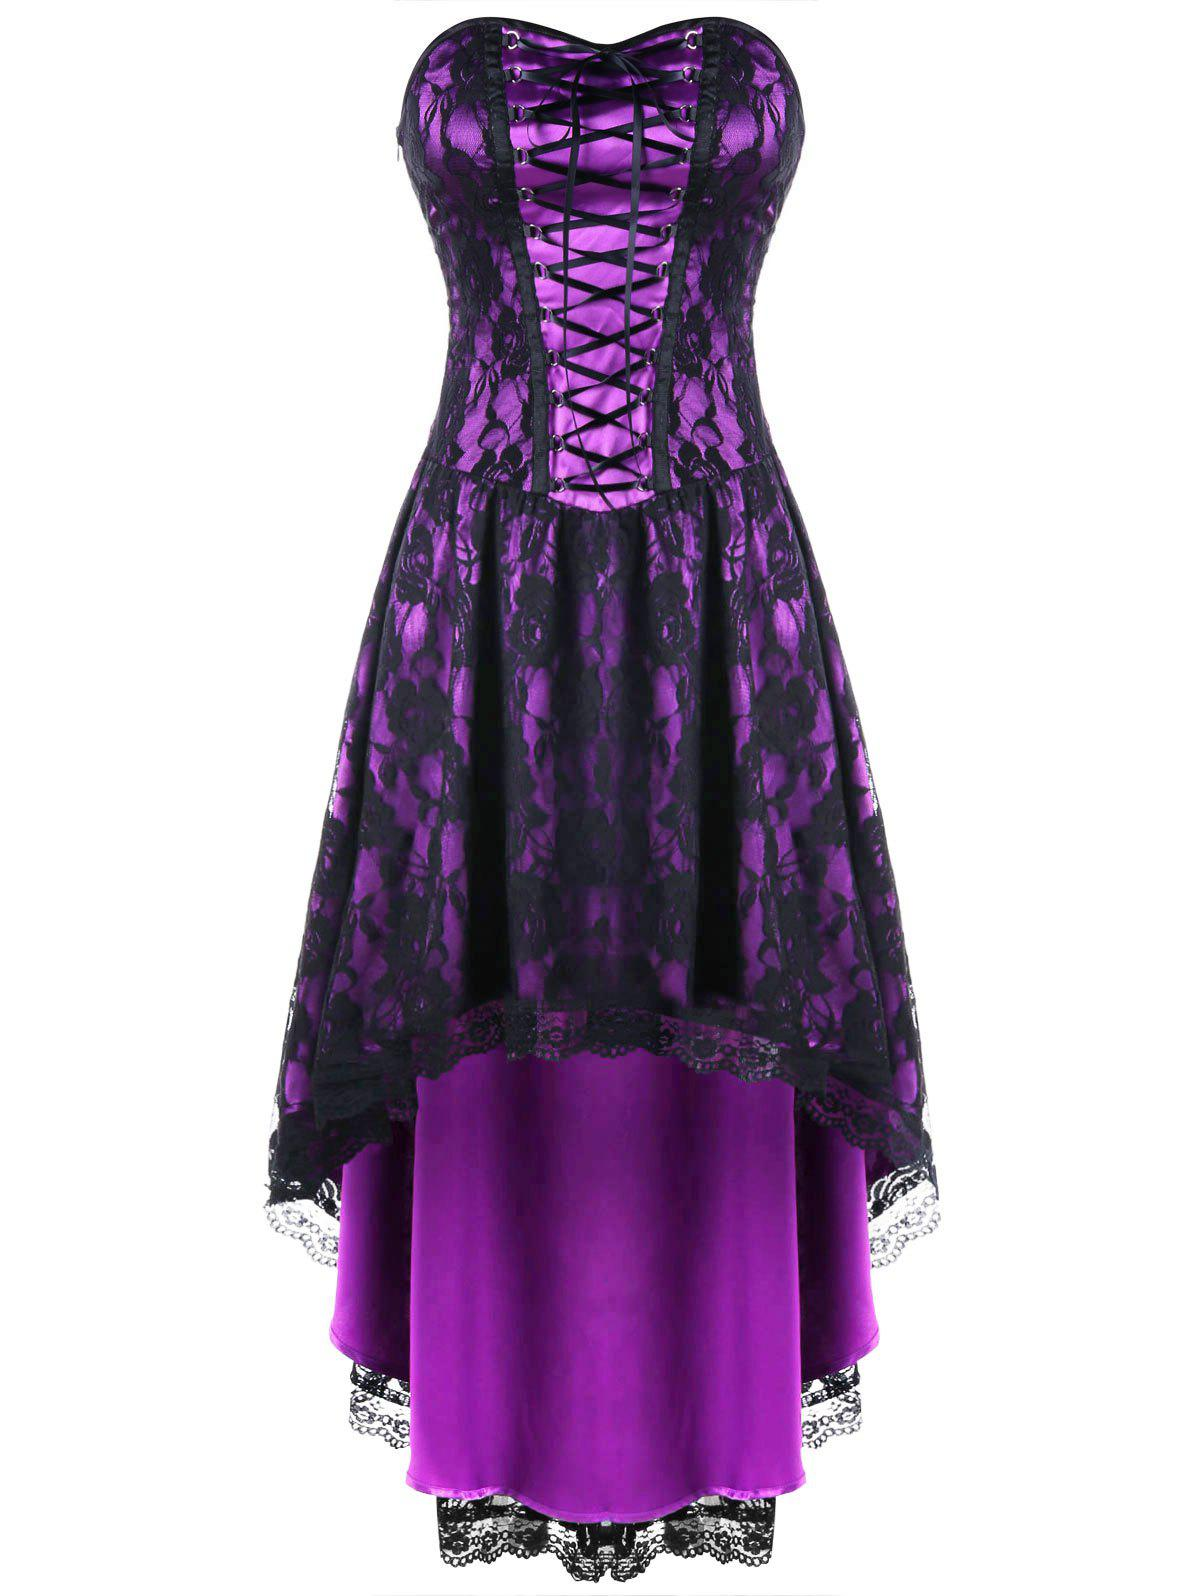 Lace Up Strapless Dip Hem Corset DressWOMEN<br><br>Size: XL; Color: BLACK AND PURPLE; Style: Vintage; Material: Nylon,Spandex; Silhouette: A-Line; Dresses Length: Knee-Length; Neckline: Strapless; Sleeve Length: Sleeveless; Embellishment: Lace; Pattern Type: Floral; With Belt: No; Season: Fall,Spring; Weight: 0.4000kg; Package Contents: 1 x Dress;